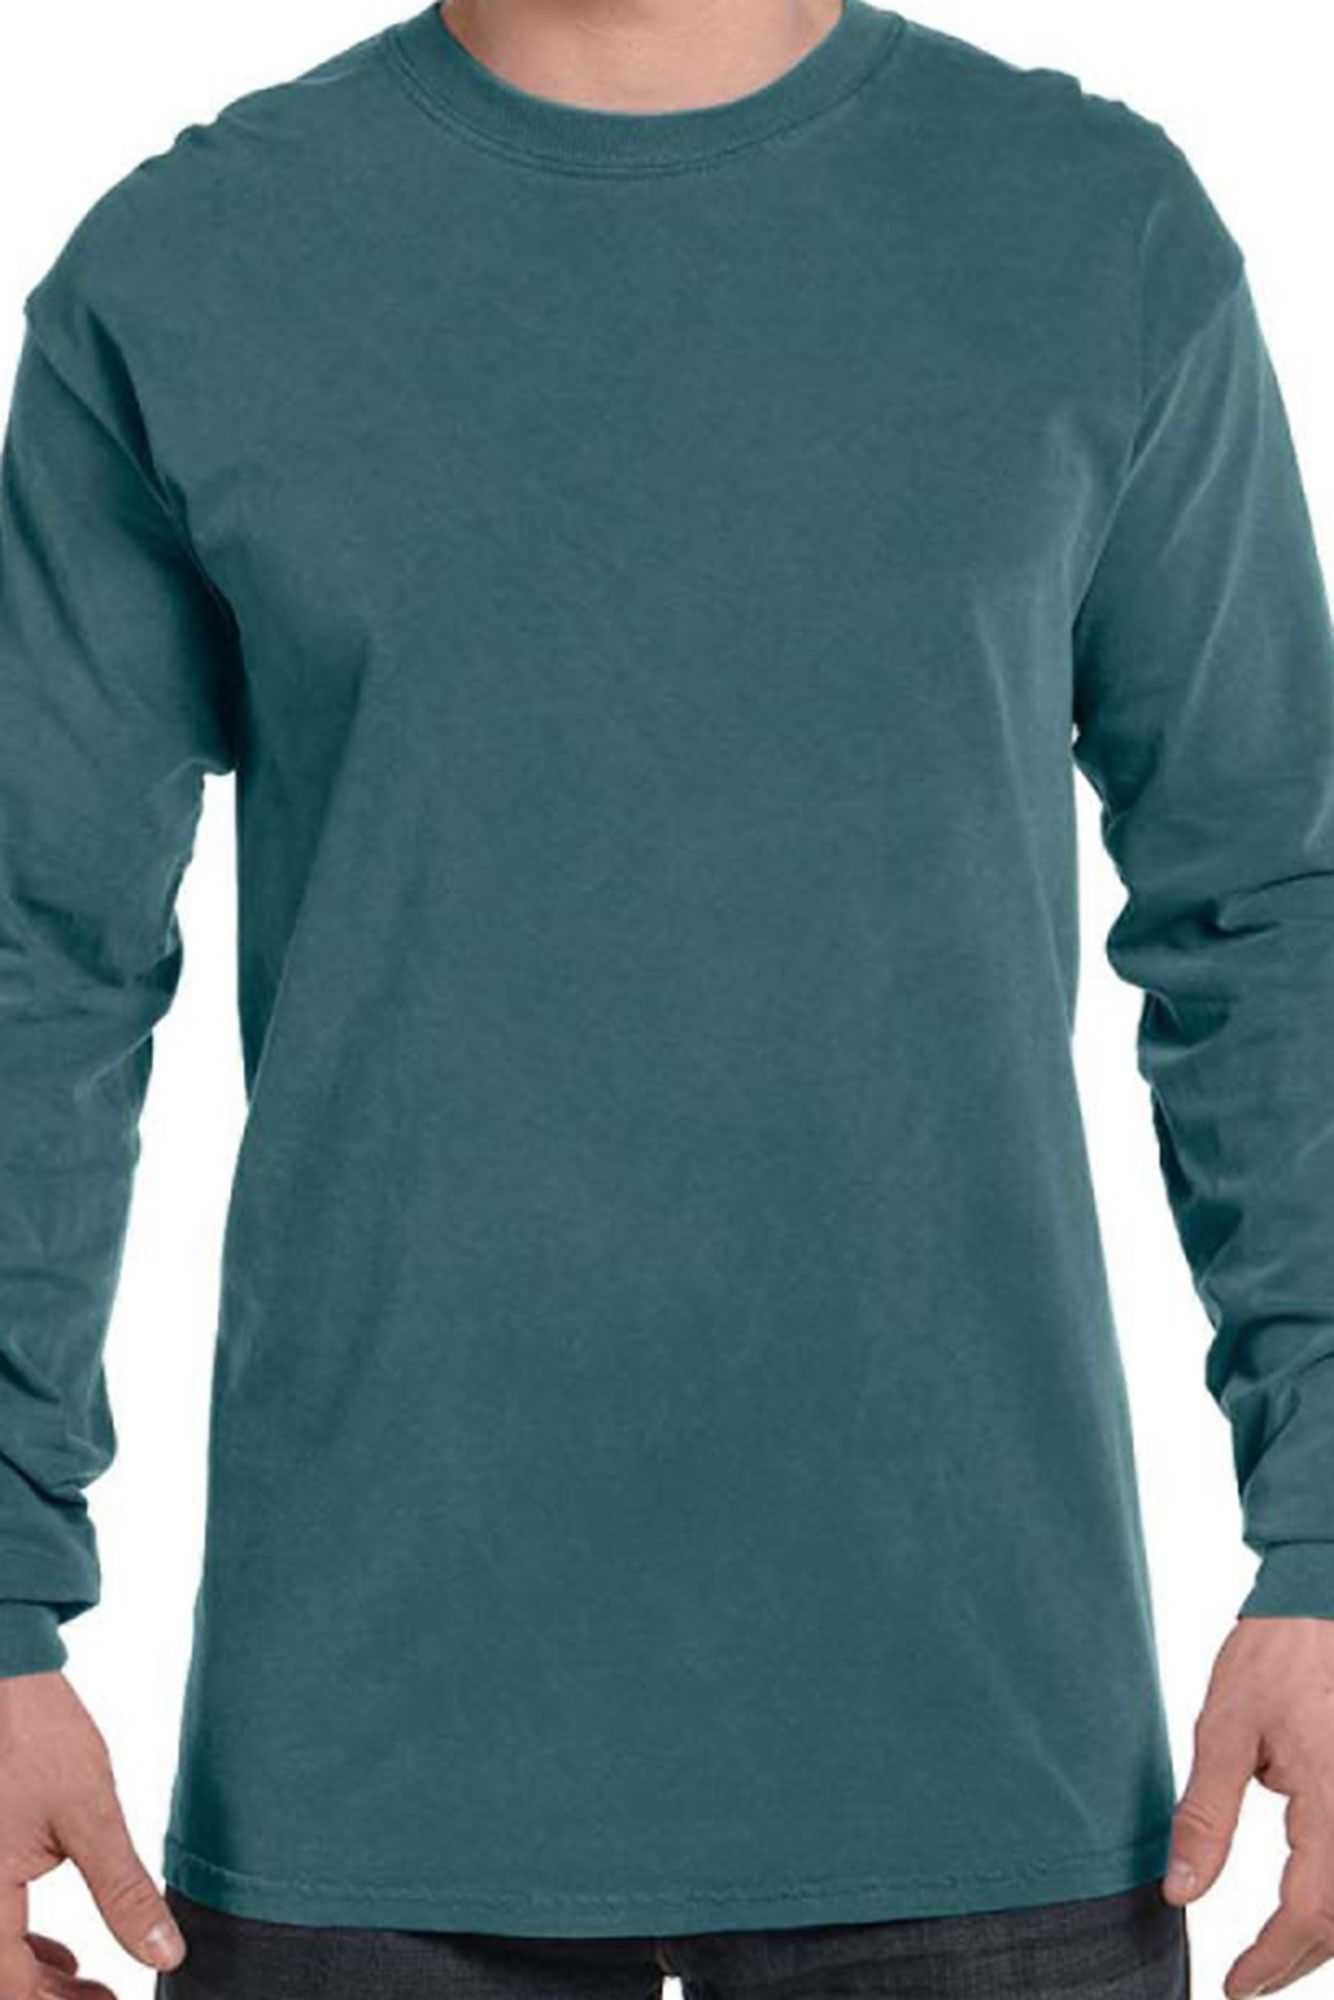 Bows Before Bros Comfort Colors Long Sleeve T Shirt 6014